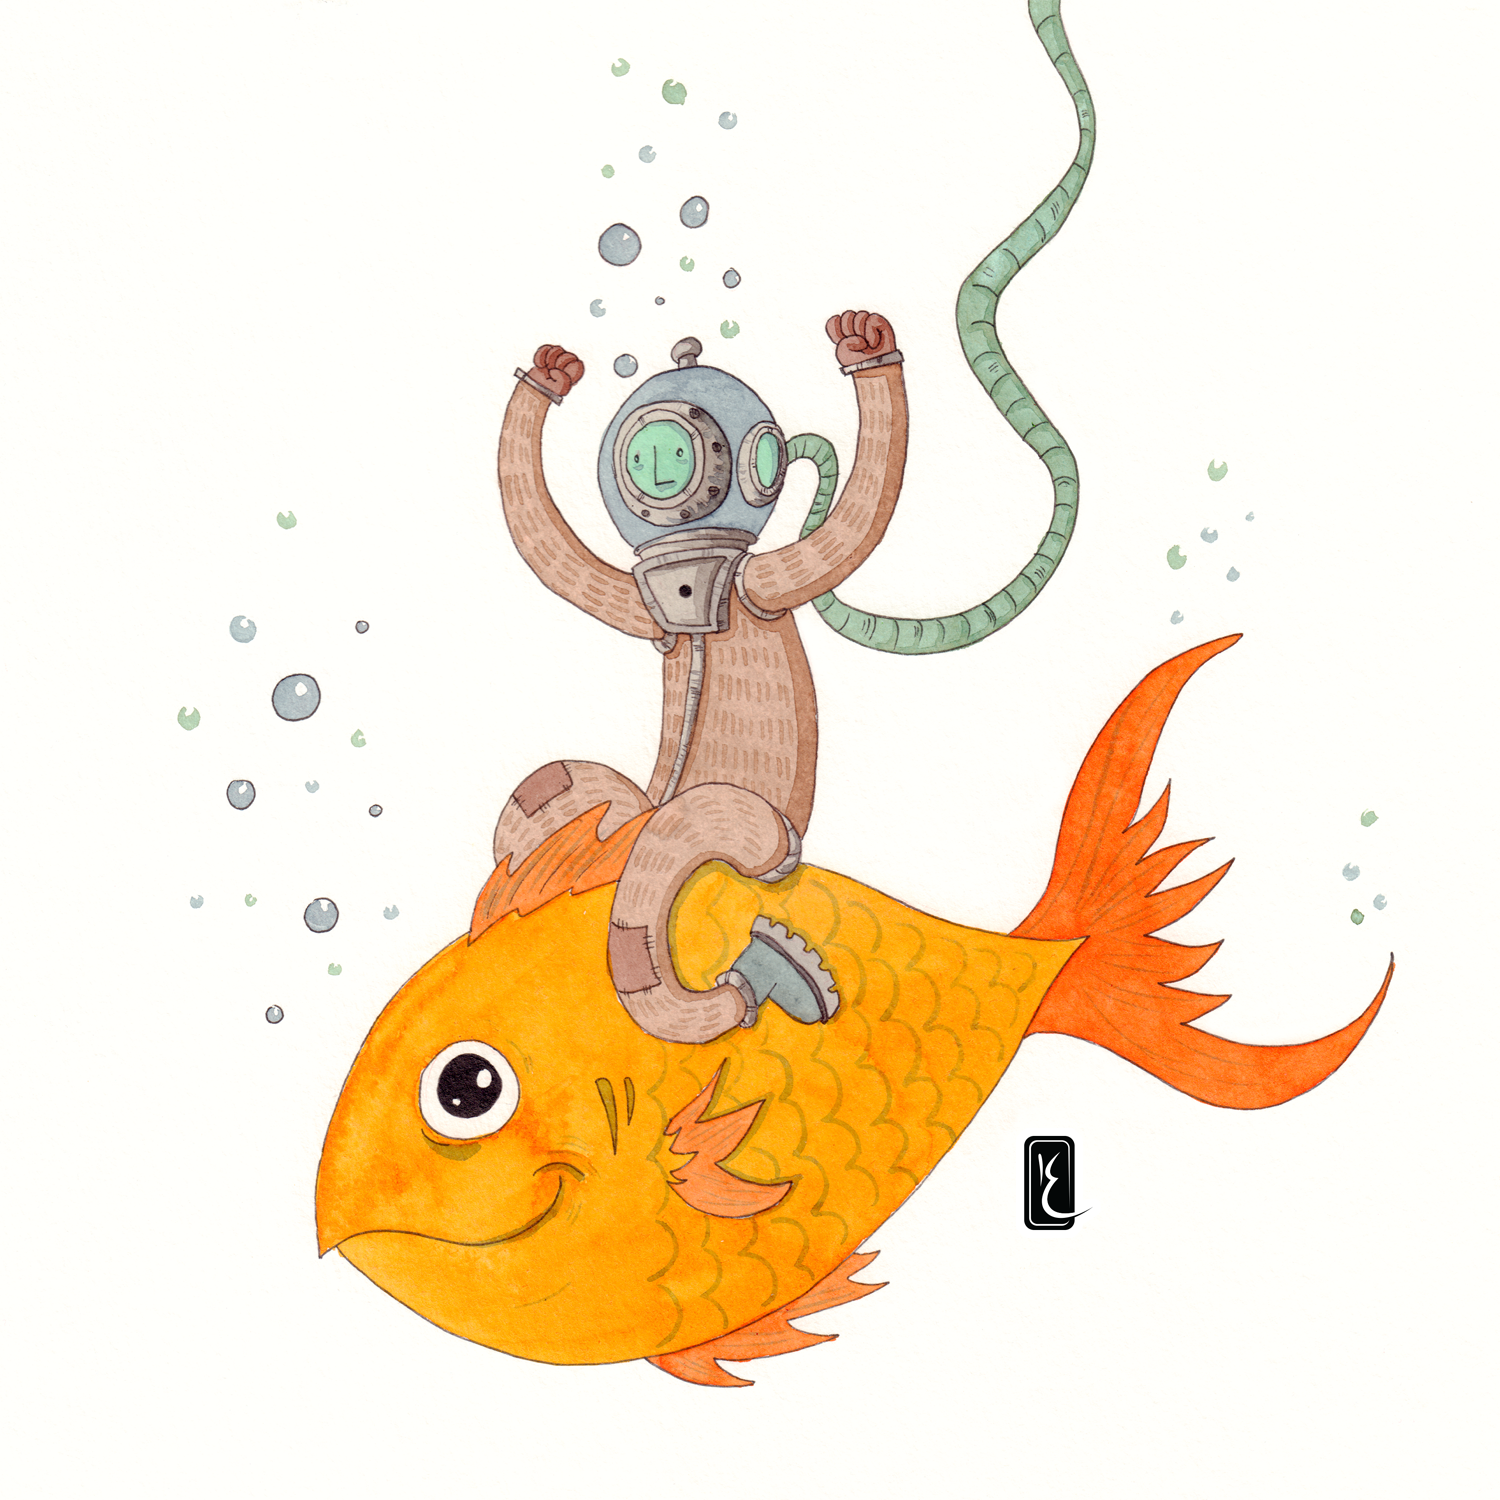 009-riding-fish-30cm-paper-ink-and-aquarel-by-Kevin-Foeshel-Lauryssen.png